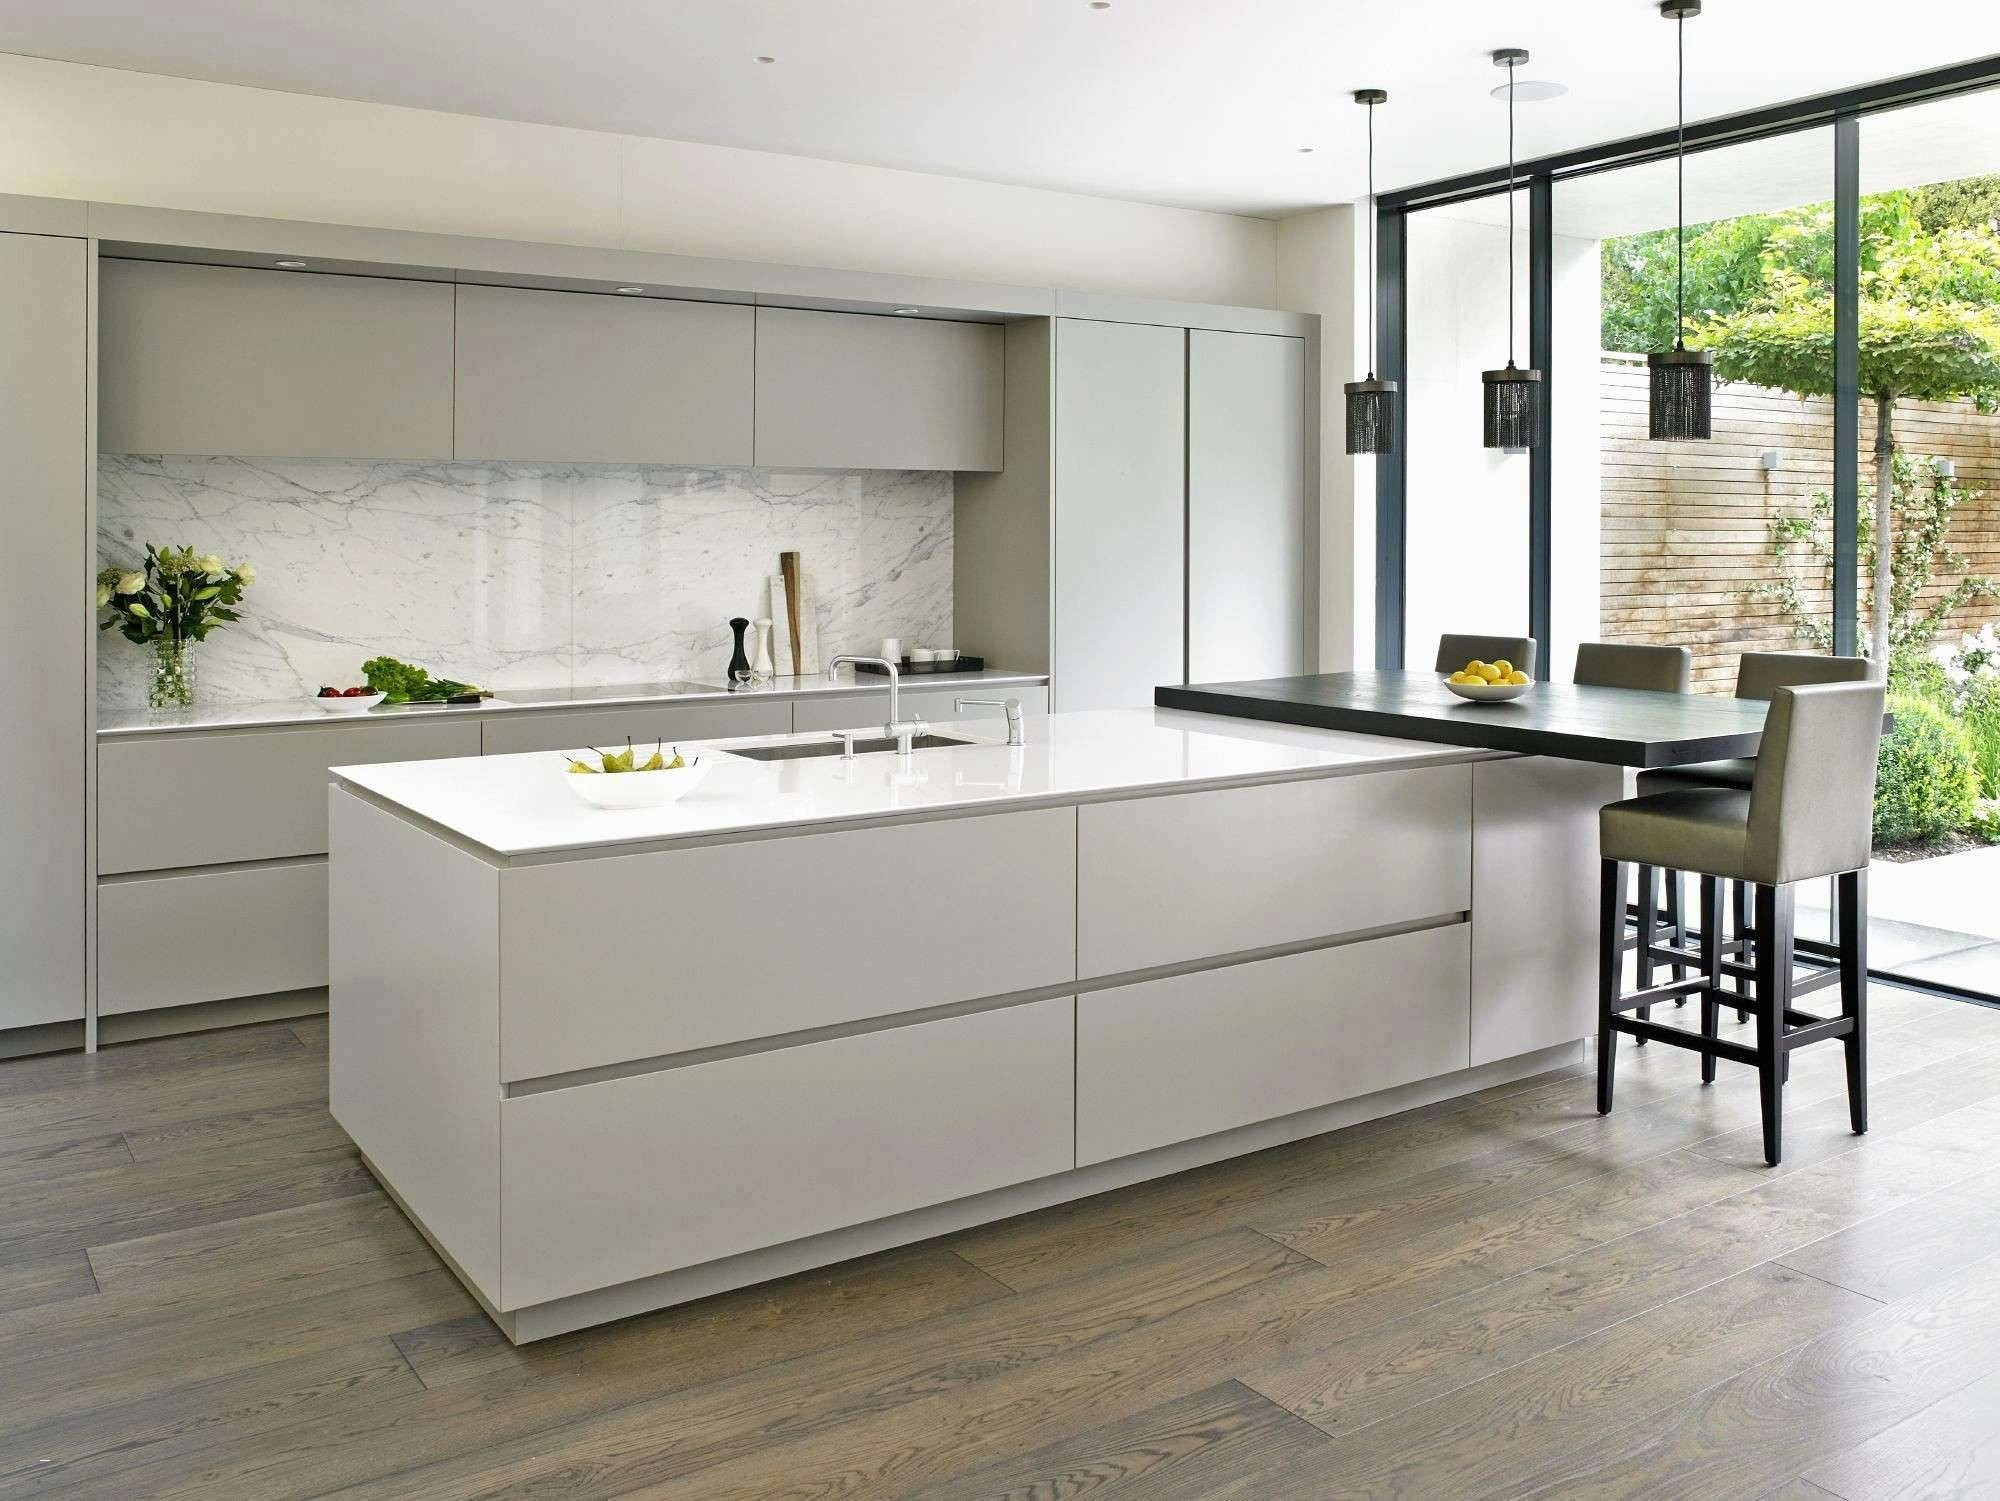 how much do new hardwood floors cost of white laminate flooring unique cost for new kitchen cabinets new 0d with regard to related post